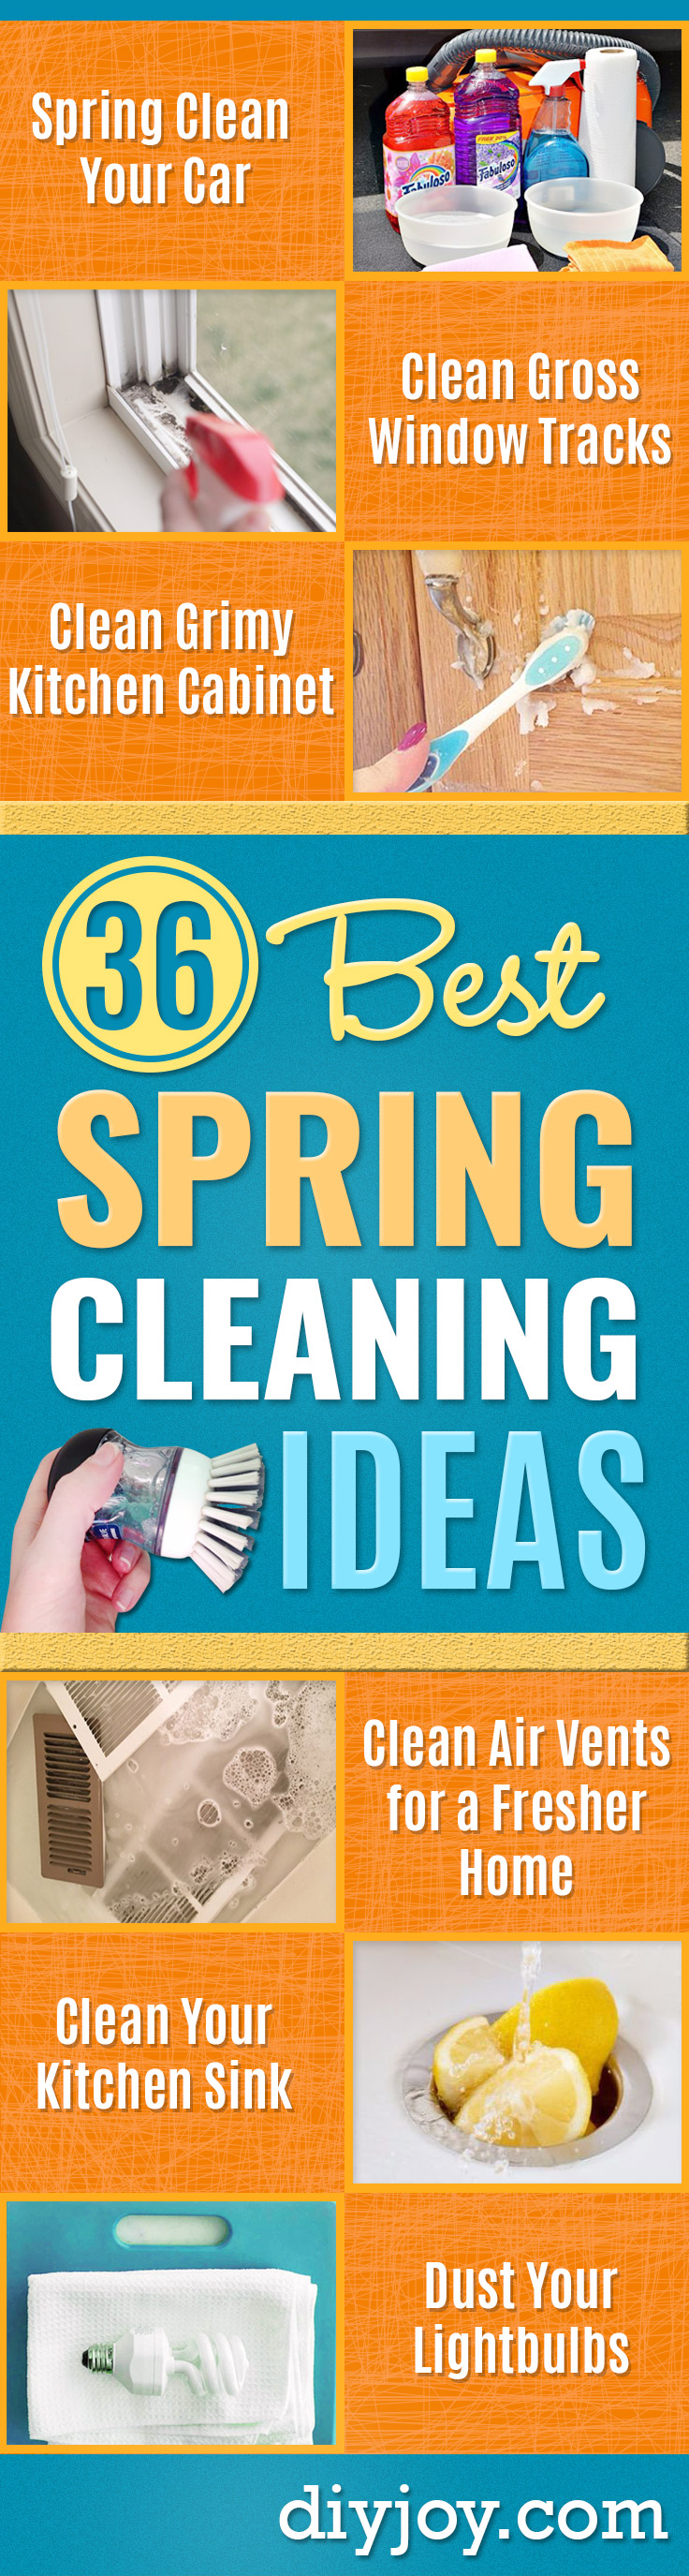 Best Spring Cleaning Ideas - Easy Cleaning Tips For Home - DIY Cleaning Hacks and Product Recipes - Tips and Tricks for Cleaning the Bathroom, Kitchen, Floors and Countertops